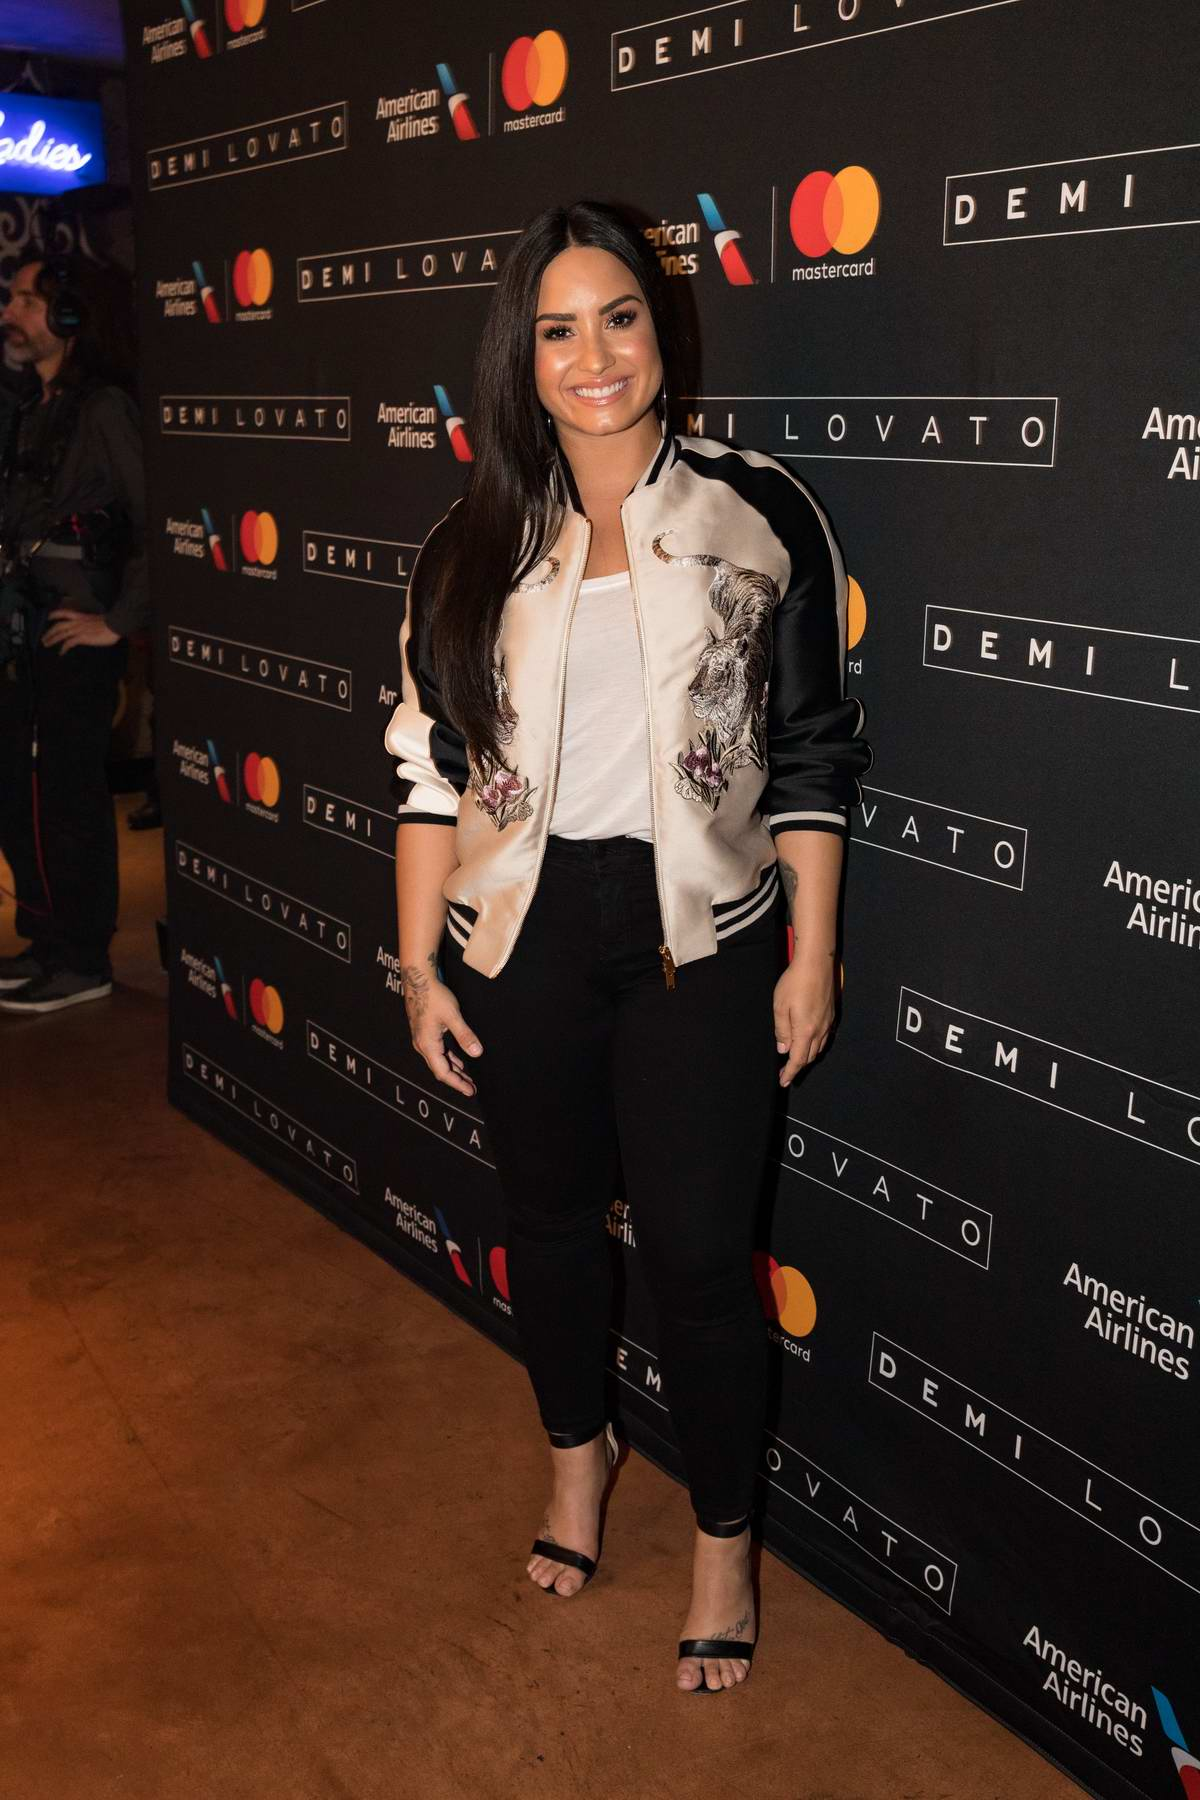 Demi Lovato Performs exclusively for American Airlines AAdvantage Mastercard card members at House of Blues in Dallas, Texas